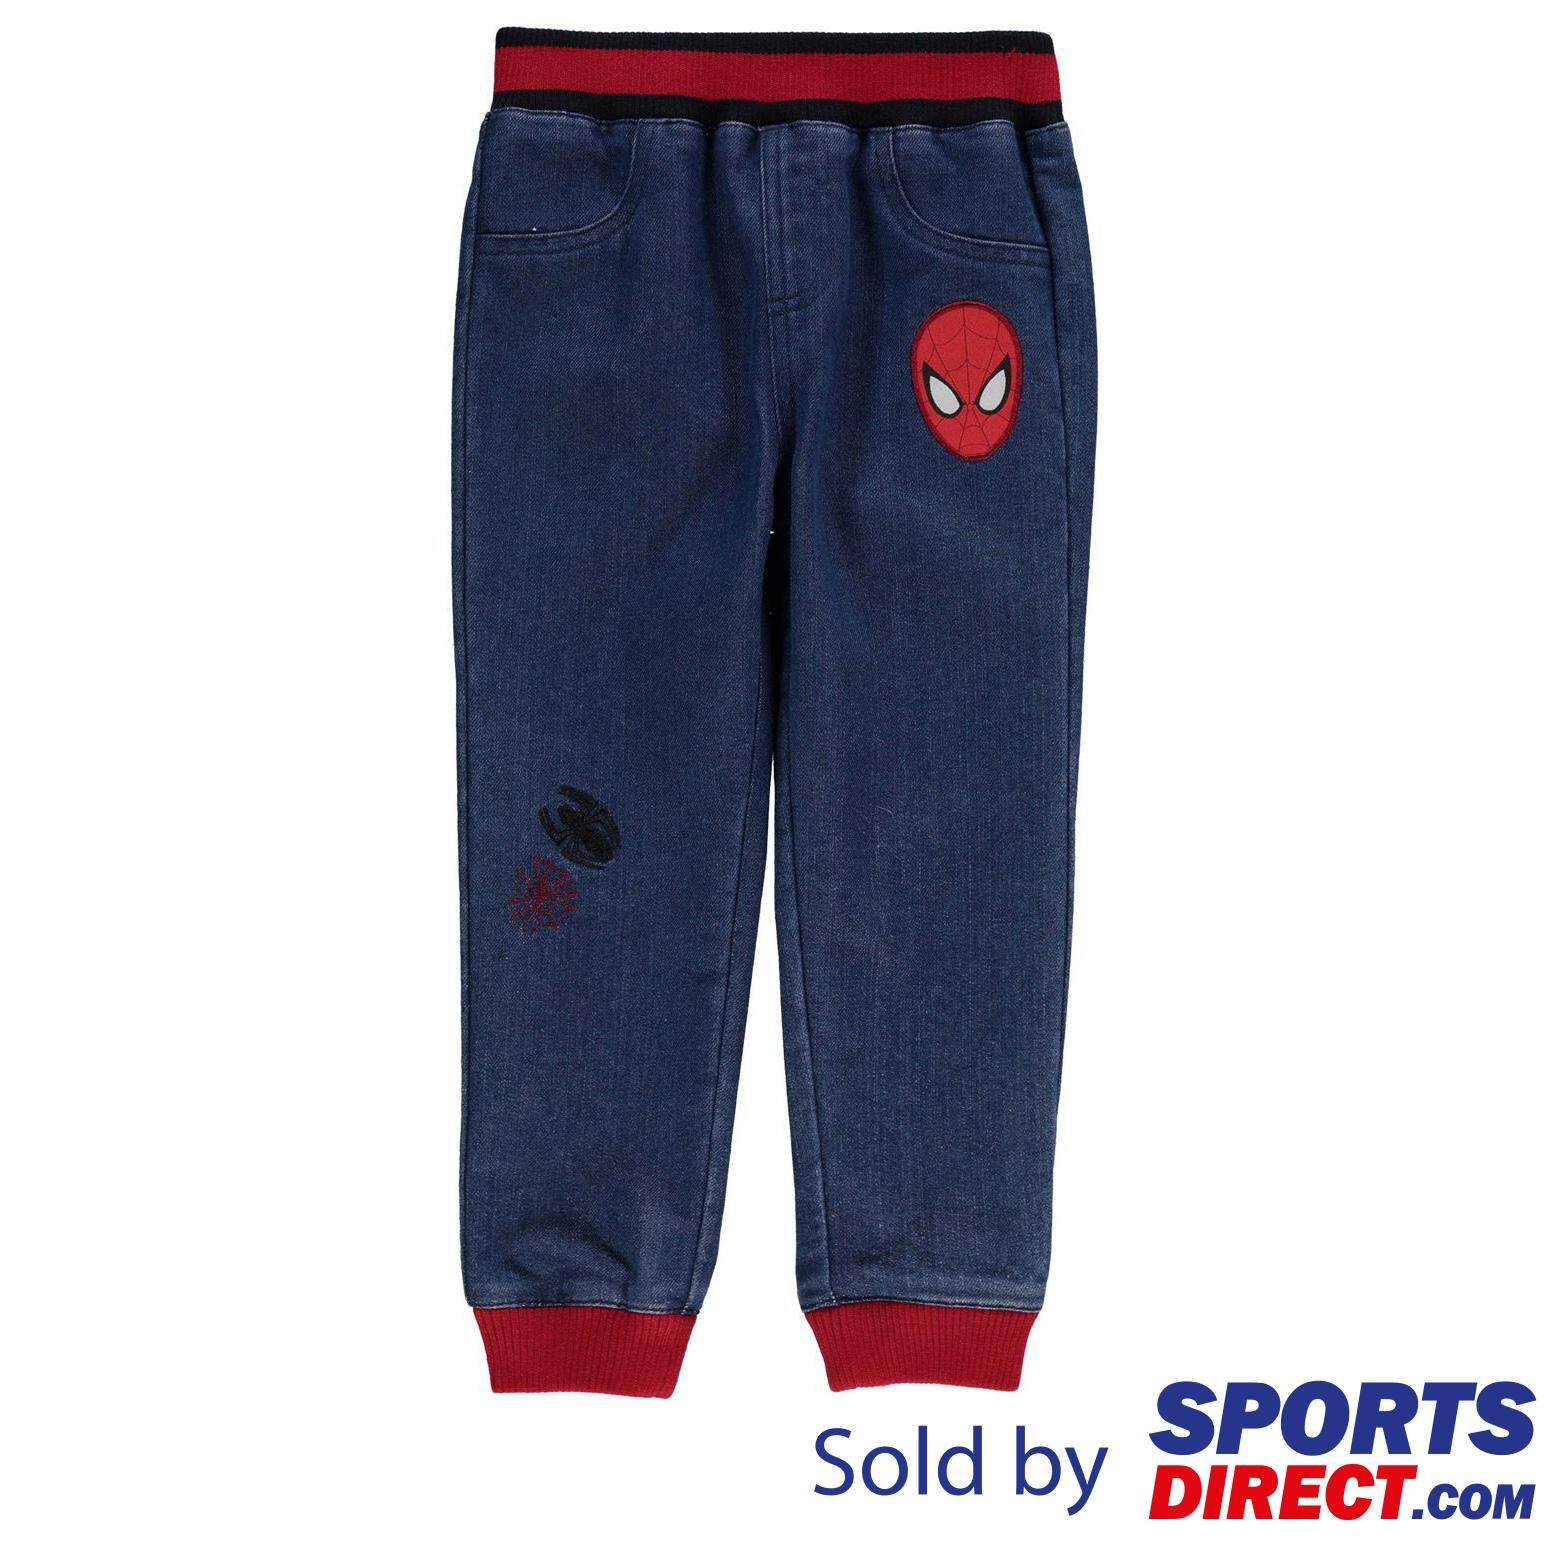 Character Kids Boys Jeans Infant (spiderman) By Sports Direct Mst Sdn Bhd.